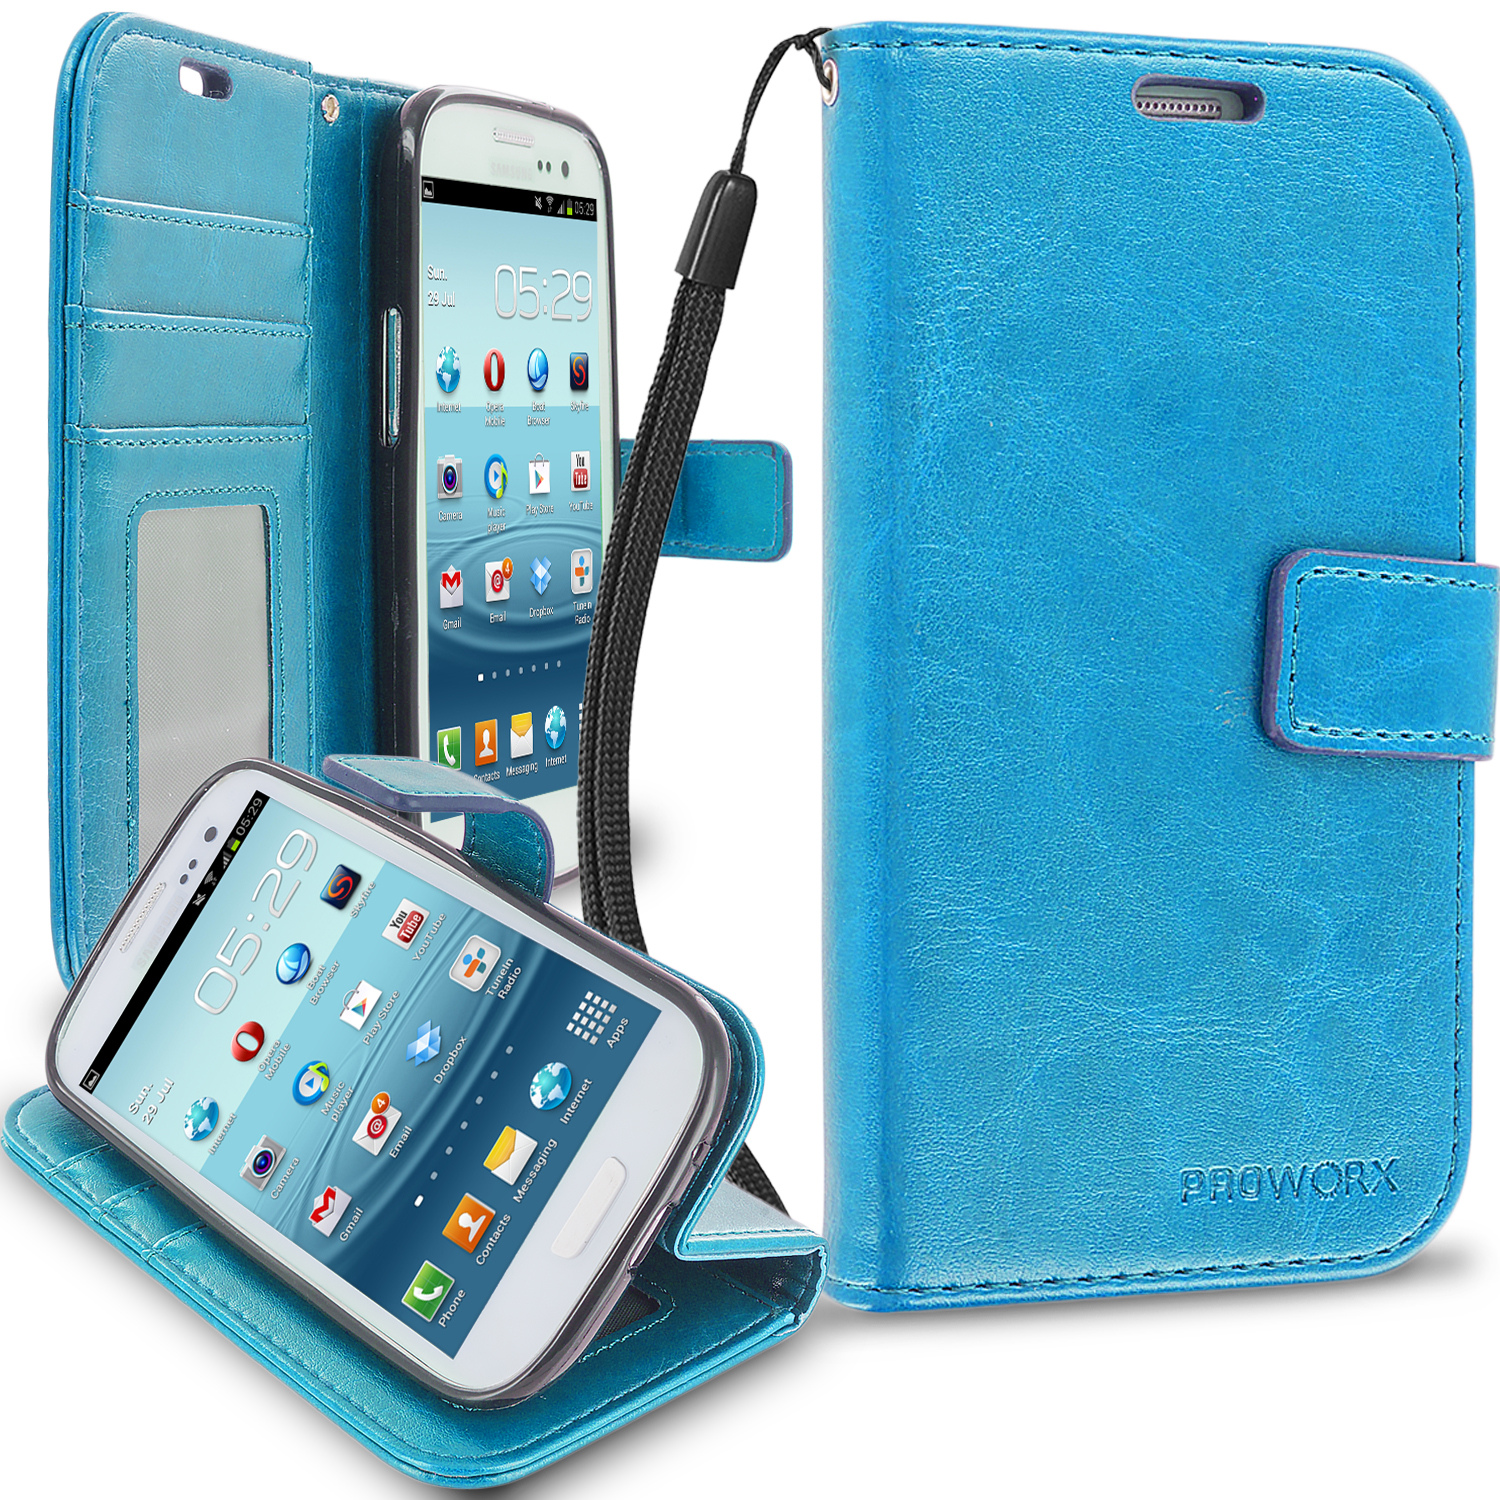 Samsung Galaxy S3 Baby Blue ProWorx Wallet Case Luxury PU Leather Case Cover With Card Slots & Stand